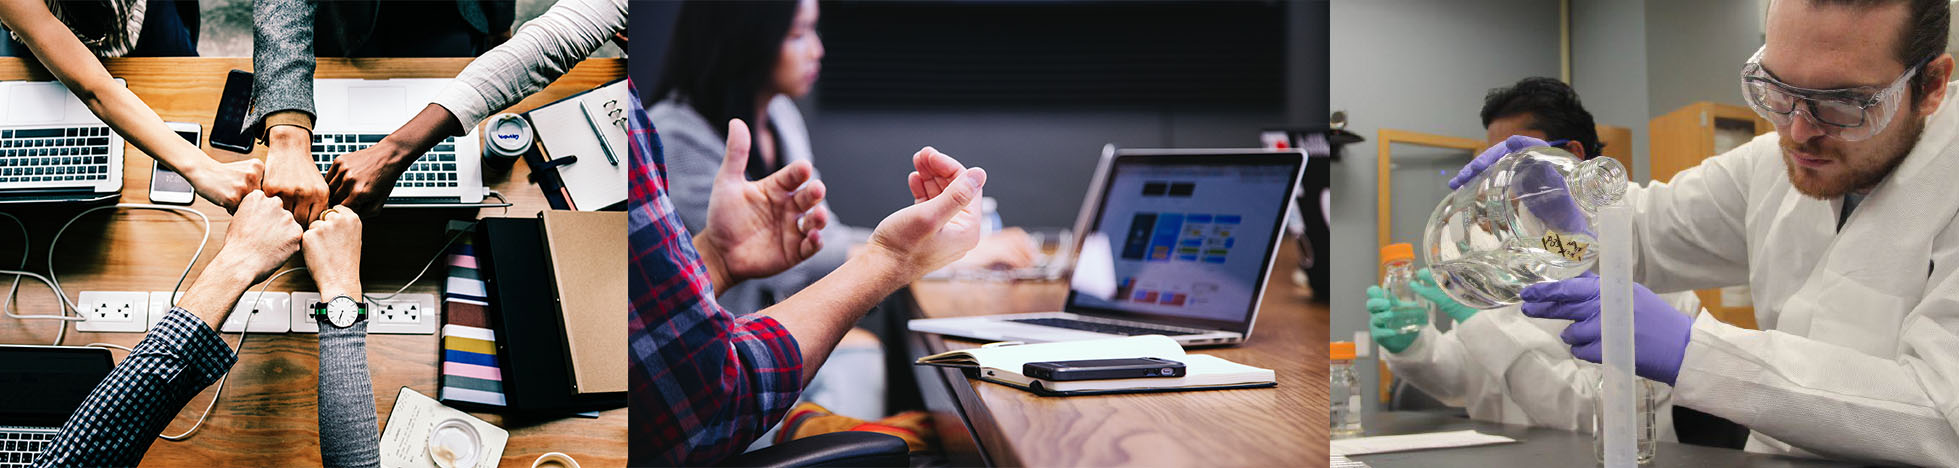 Three pictures of public health careers. The first one shows several people fist-bumping over an office table, the second one shows people at work at a computer and the third one shows a person in a laboratory.